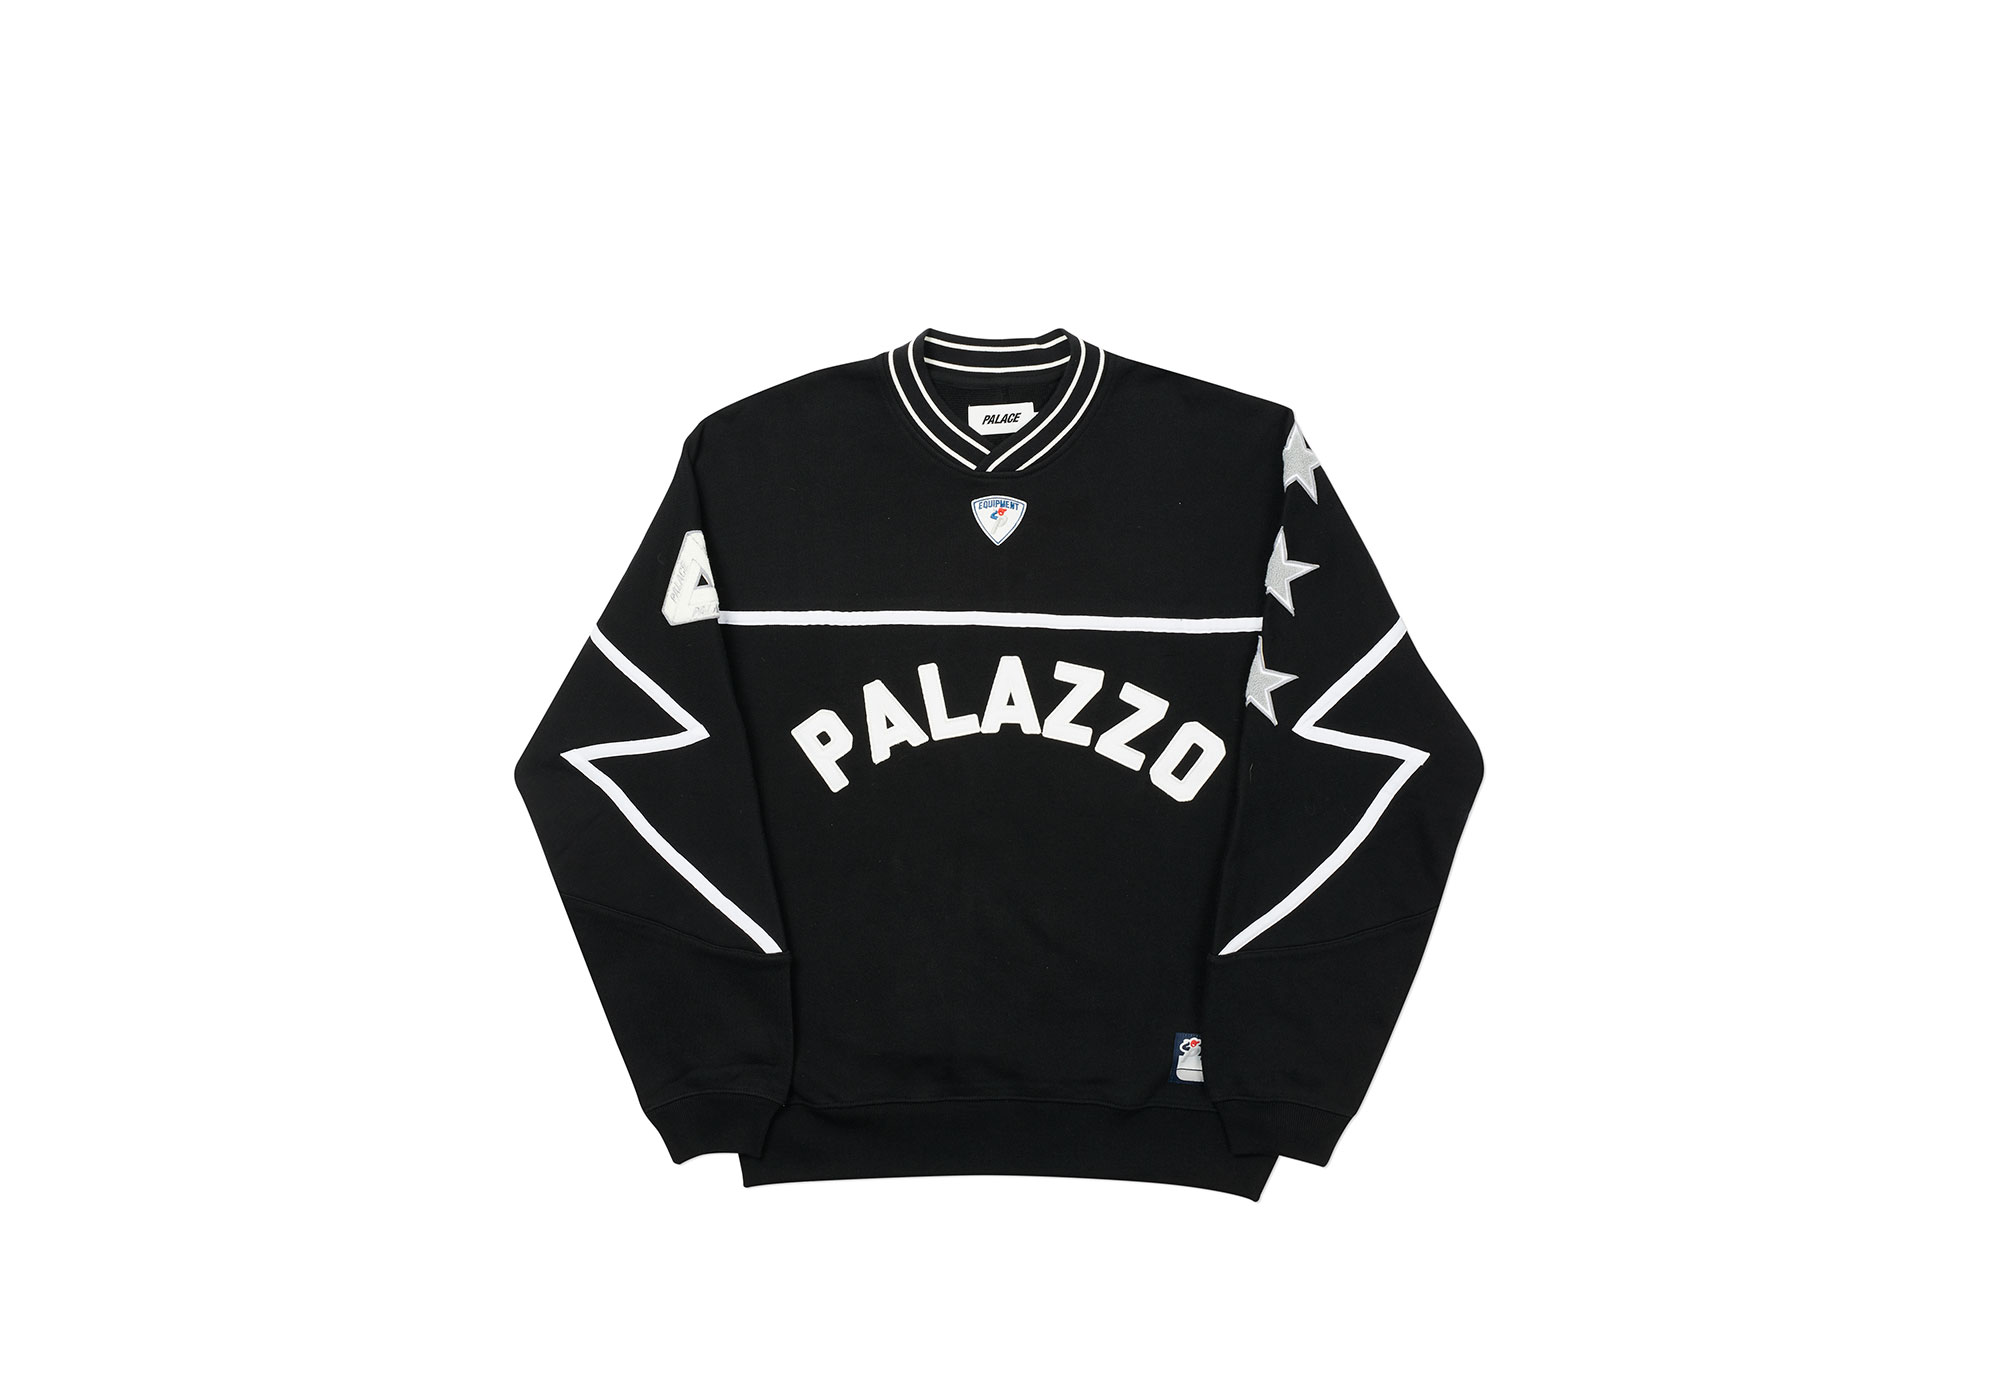 PALACE SKATEBOARDS、2020年秋の新作発売 ベロアセットアップなど